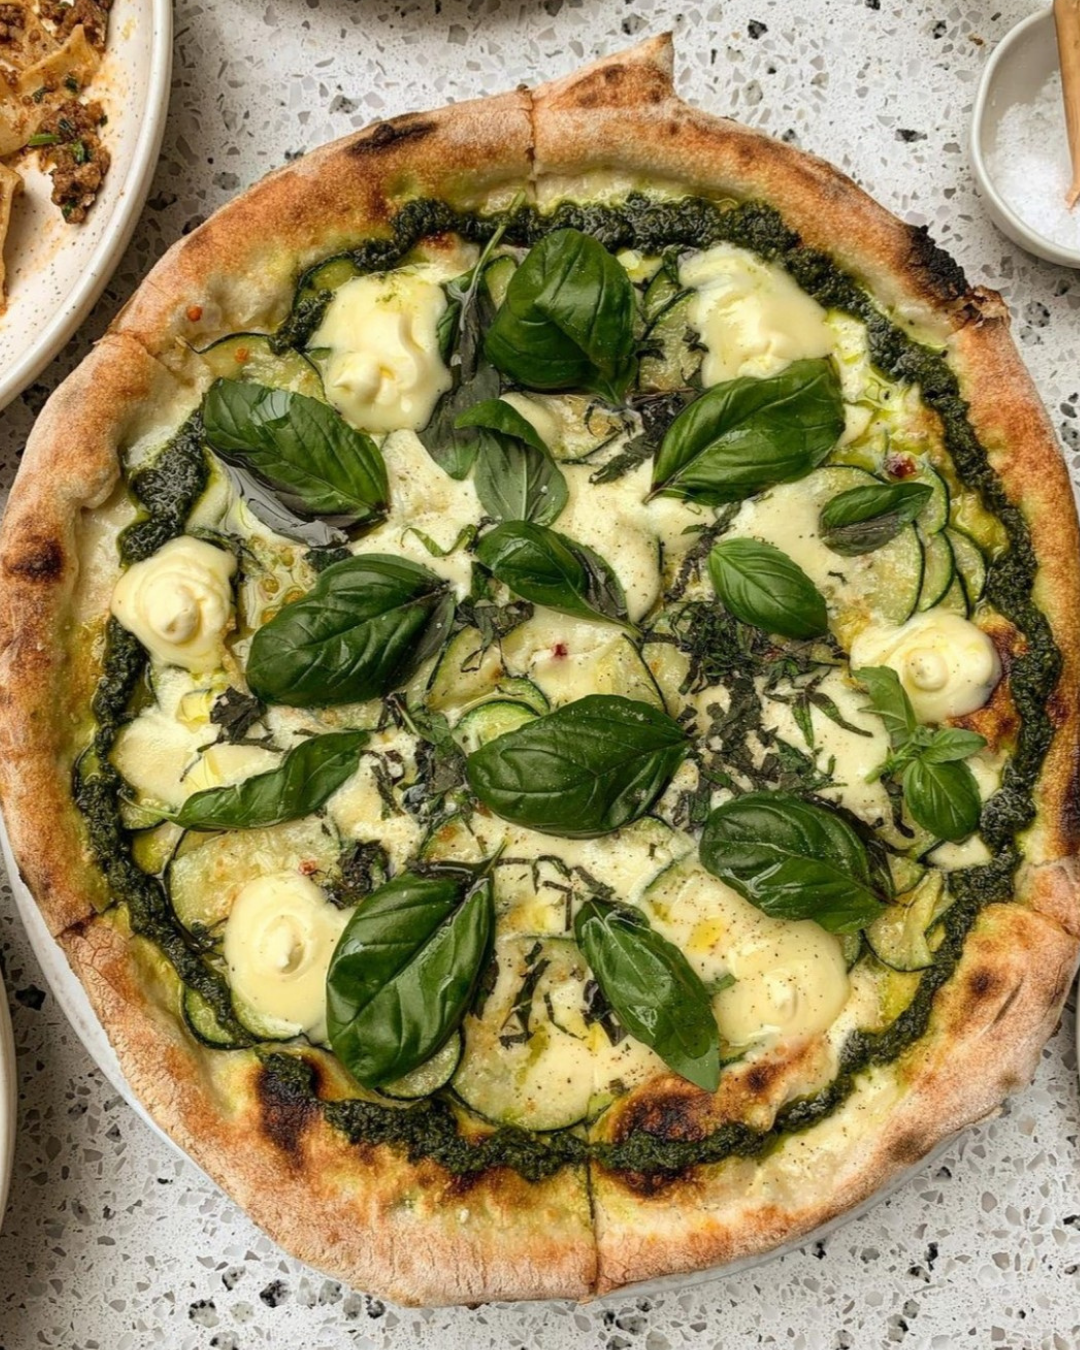 Delicious vegetarian pizza on a plate - Non Solo Pizza's 'Nerano' made with marinated zucchini, whipped stracchino cheese, parmesan, green pesto and lots of basil